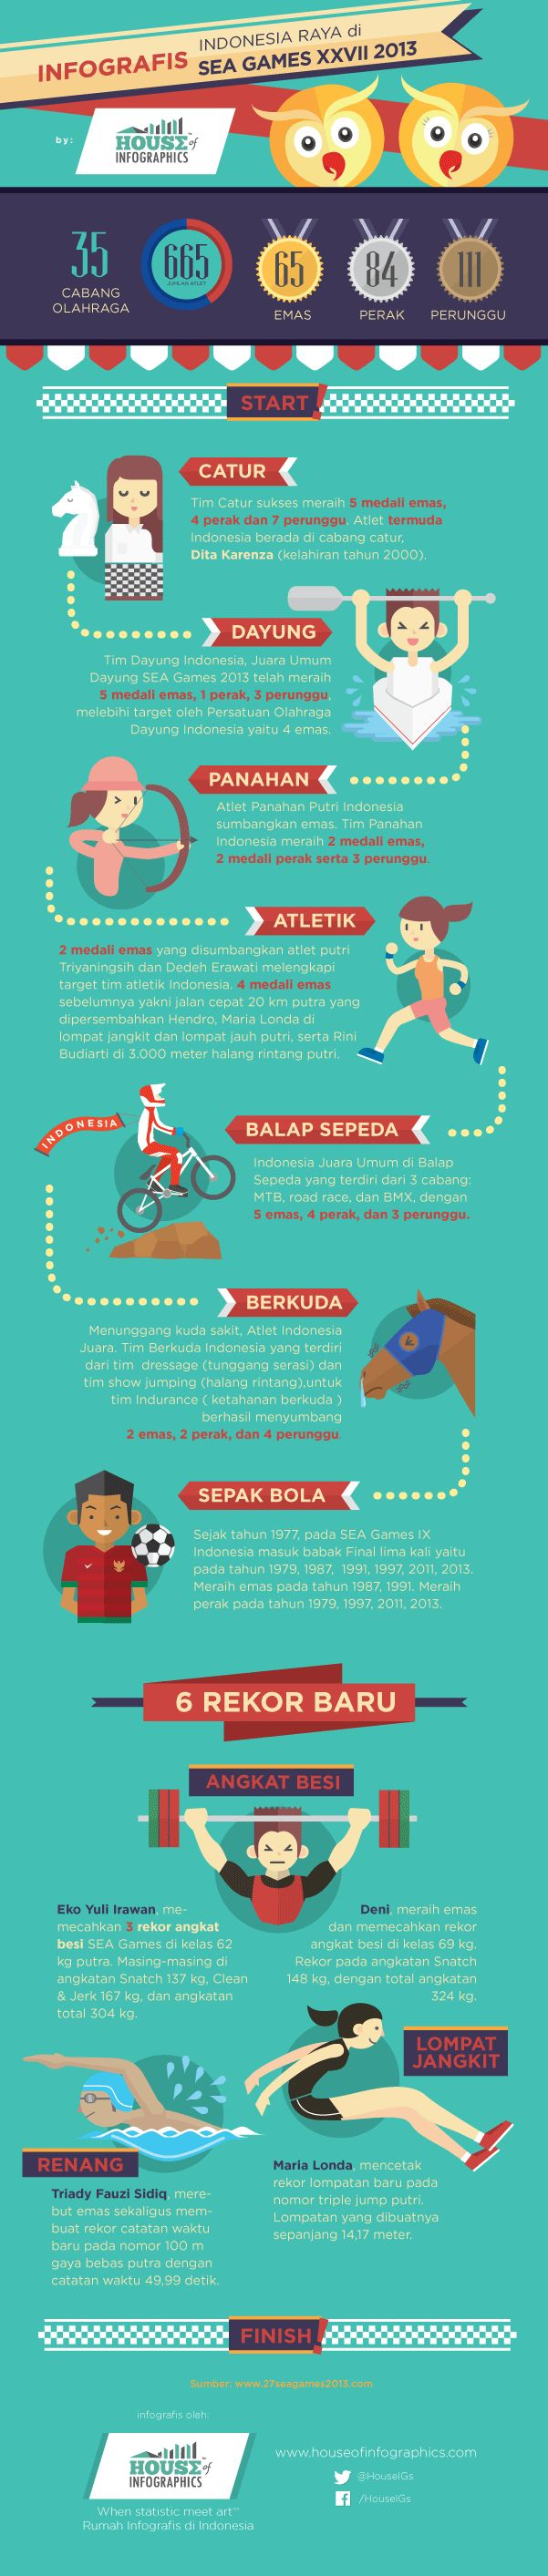 Infografis: Prestasi Indonesia di SEA Games 2013